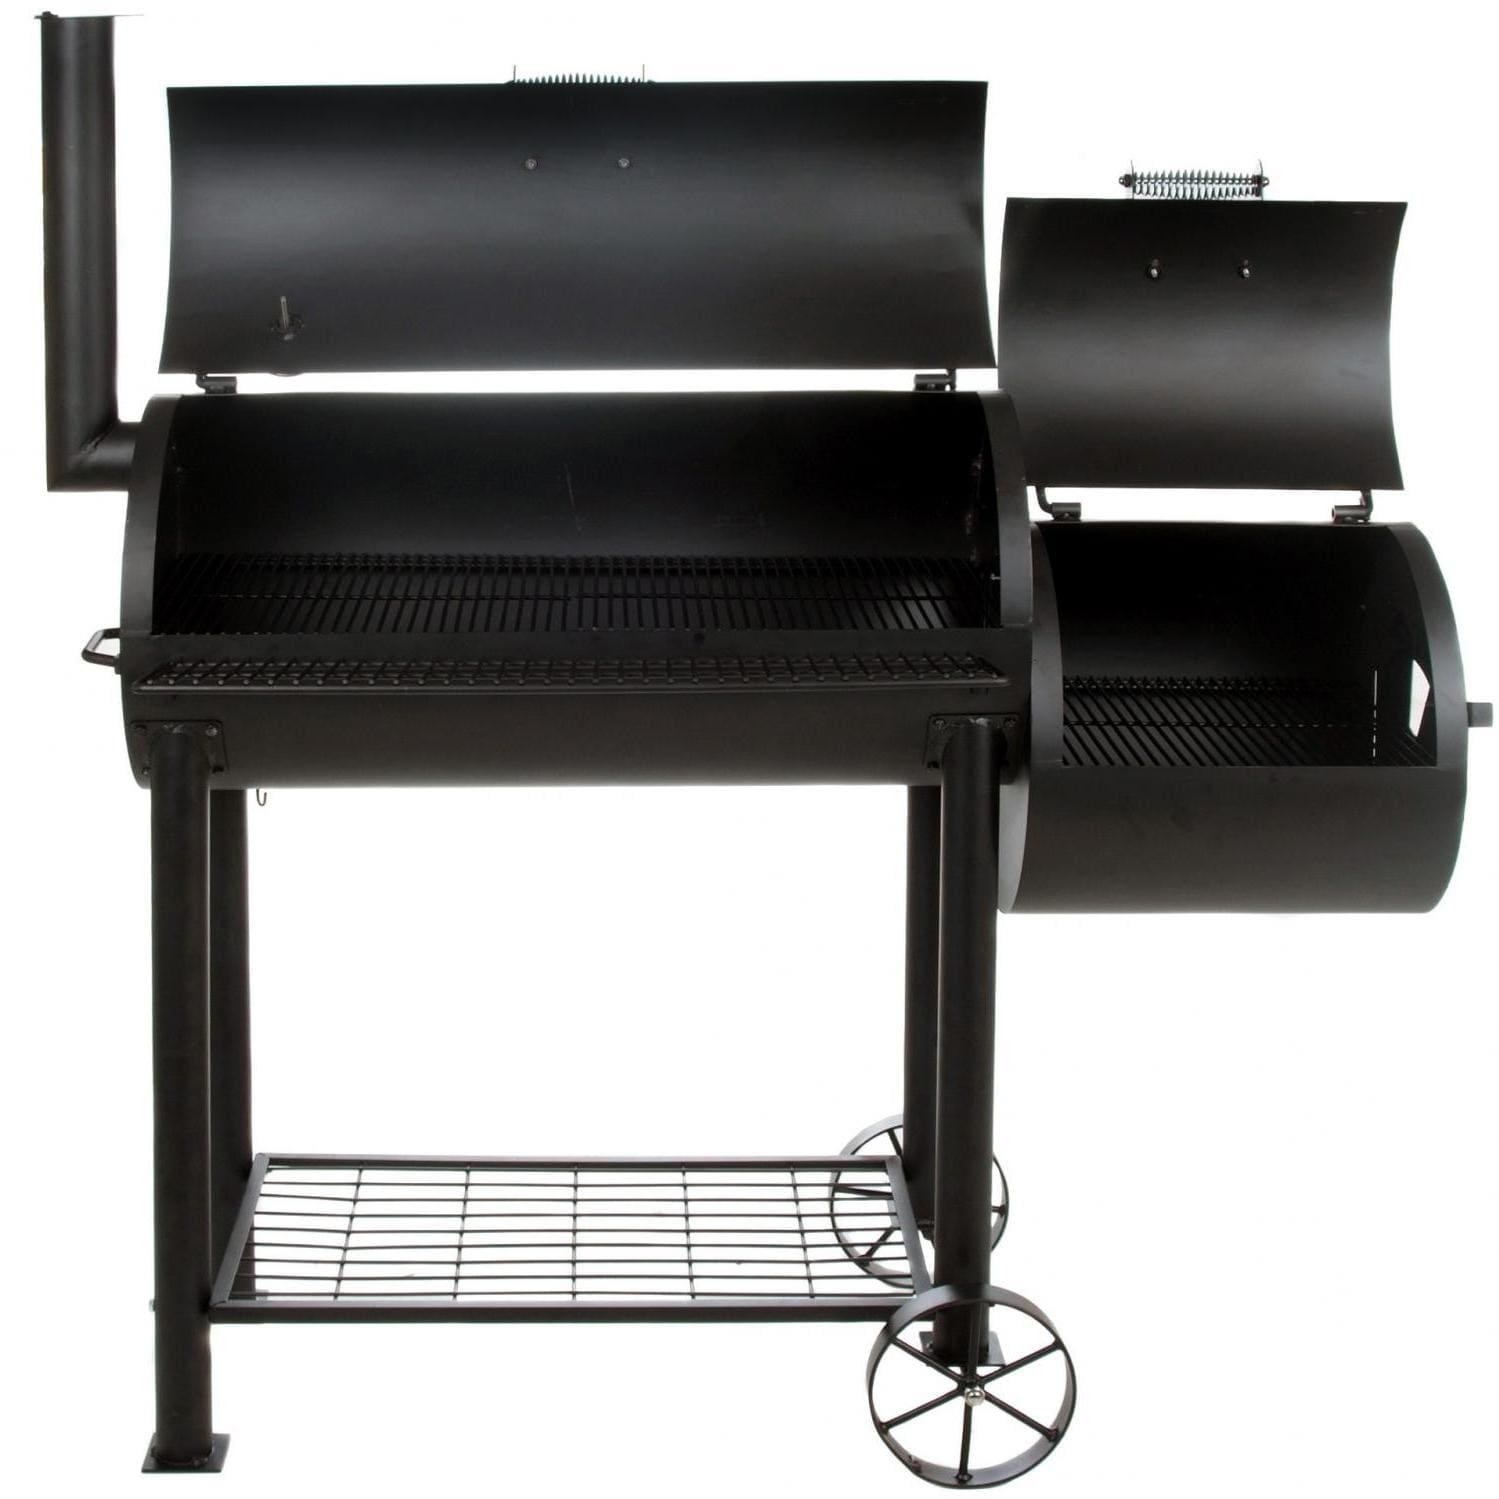 charcoal grill smoker combo images galleries with a bite. Black Bedroom Furniture Sets. Home Design Ideas